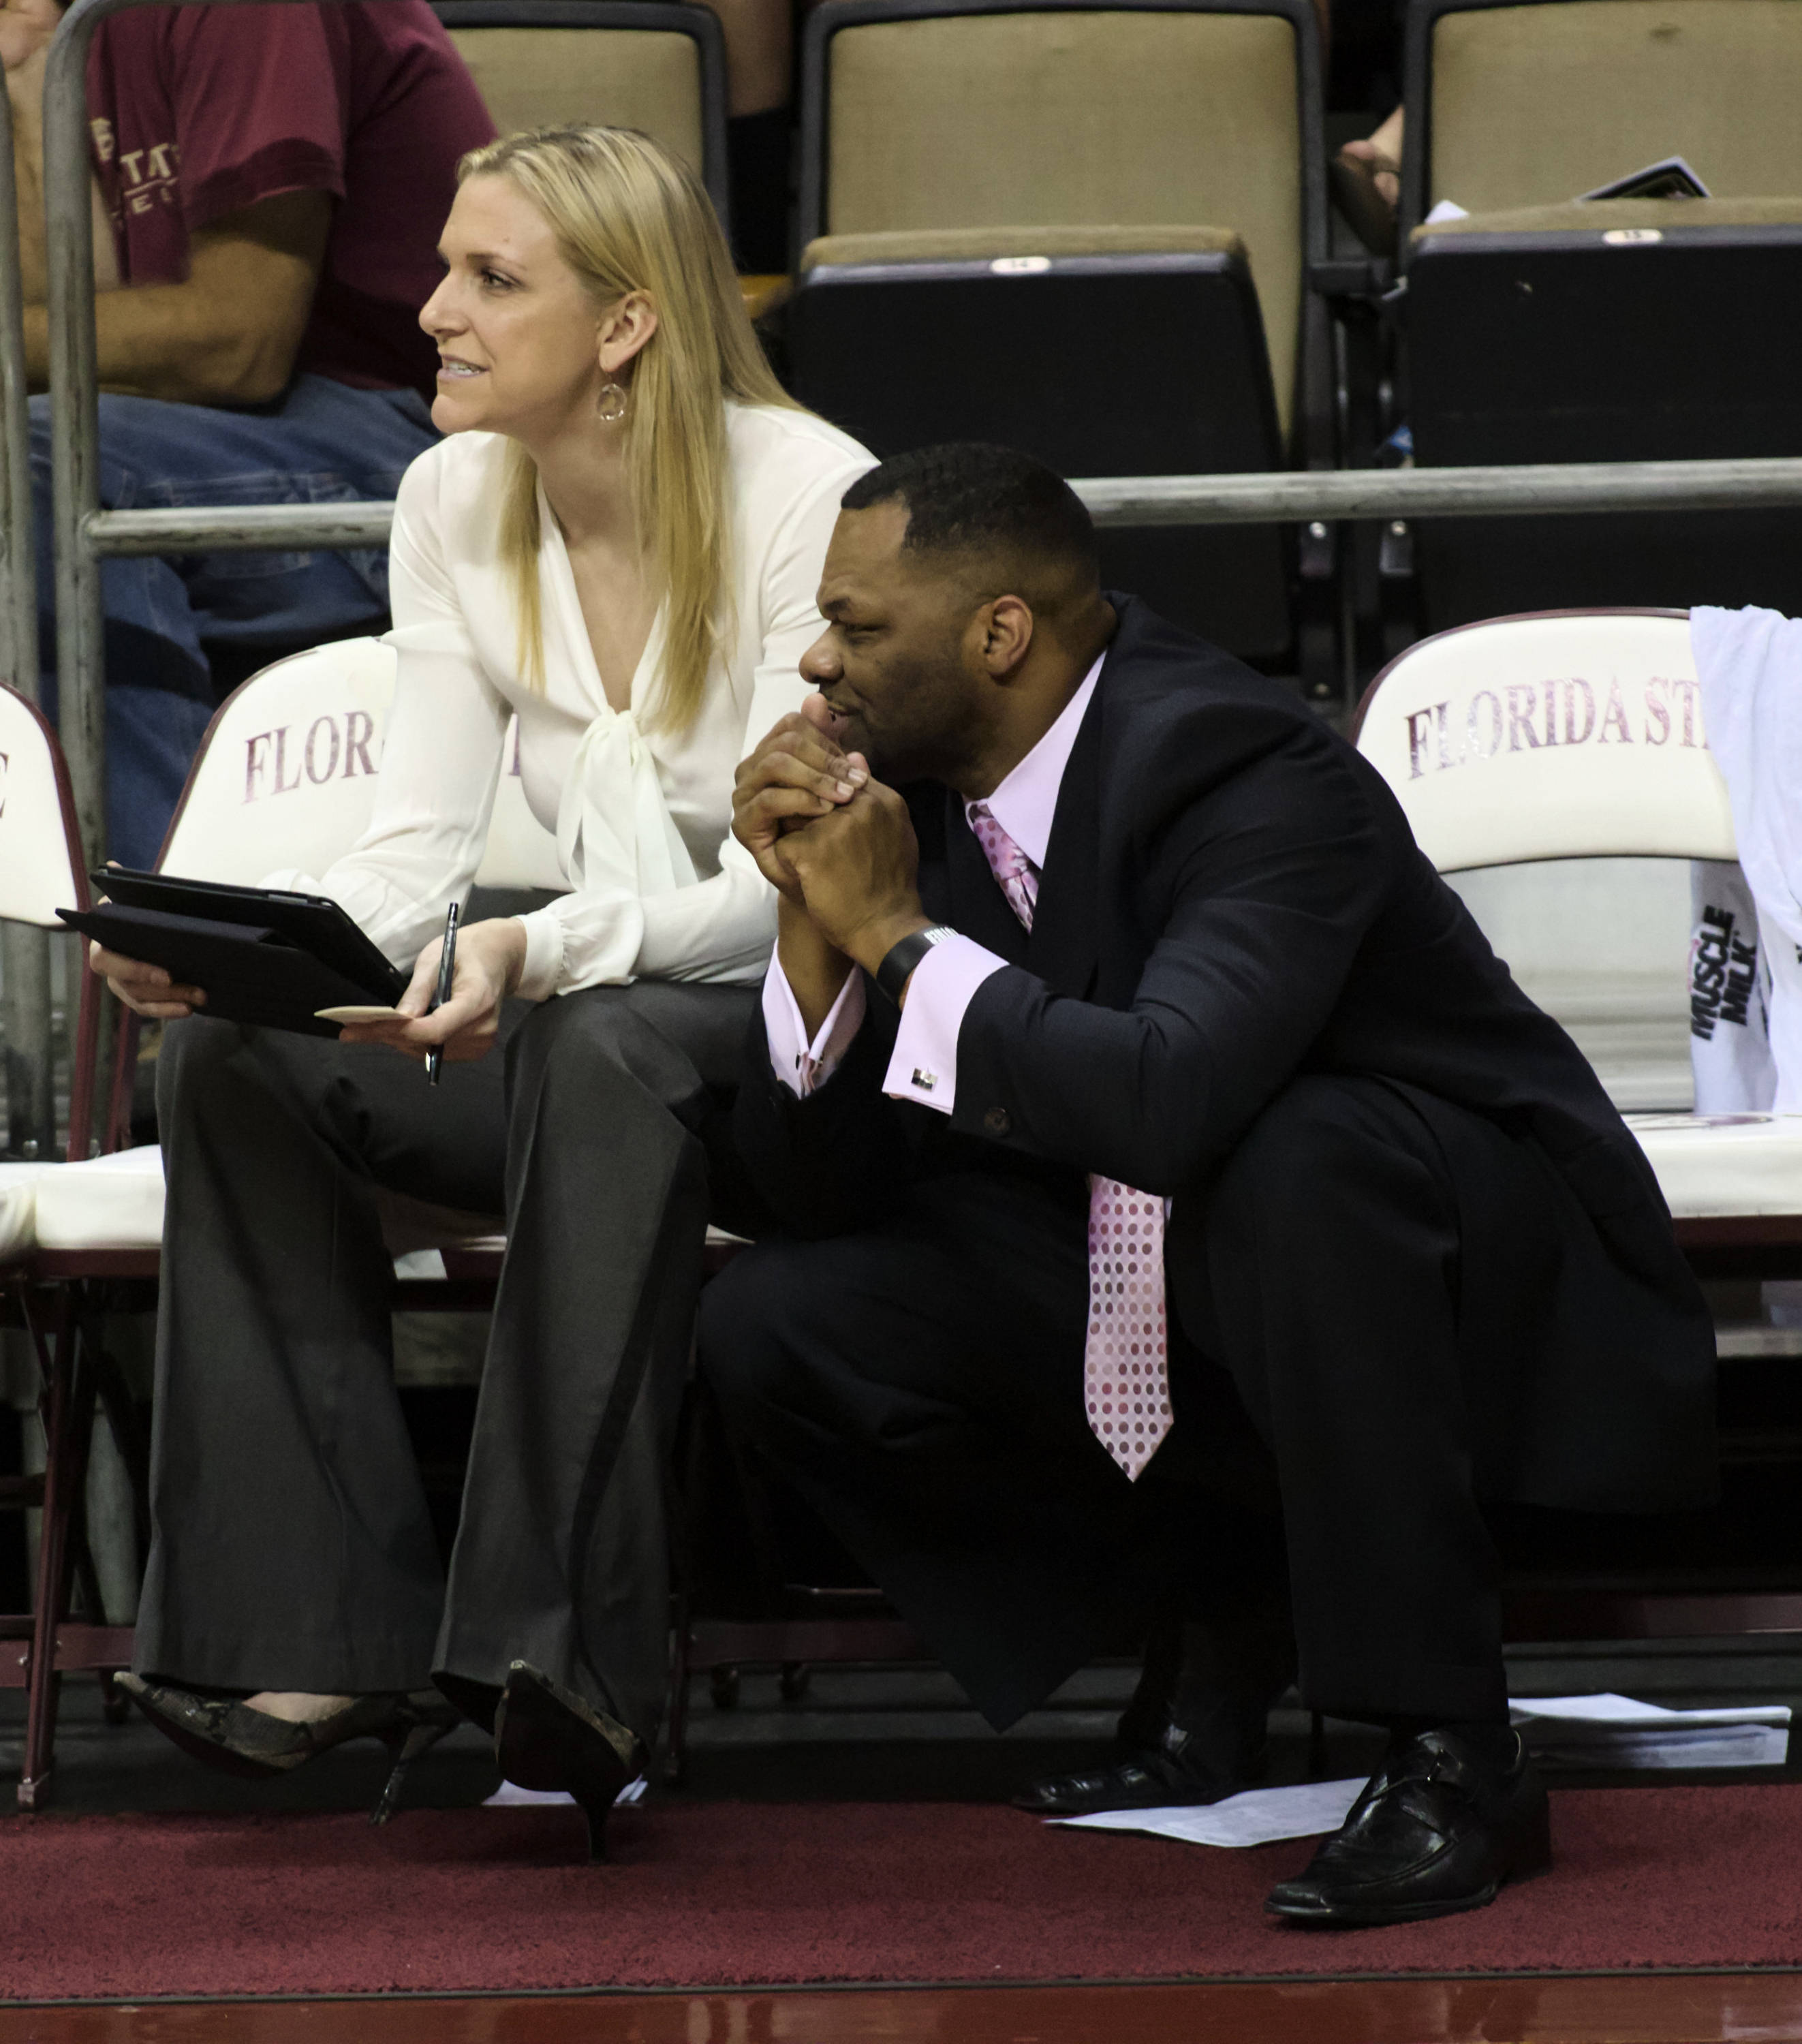 Assistant Coaches Brooke Wyckoff and Ron Hughey,FSU vs Samford, 11/11/12. (Photo by Steve Musco)